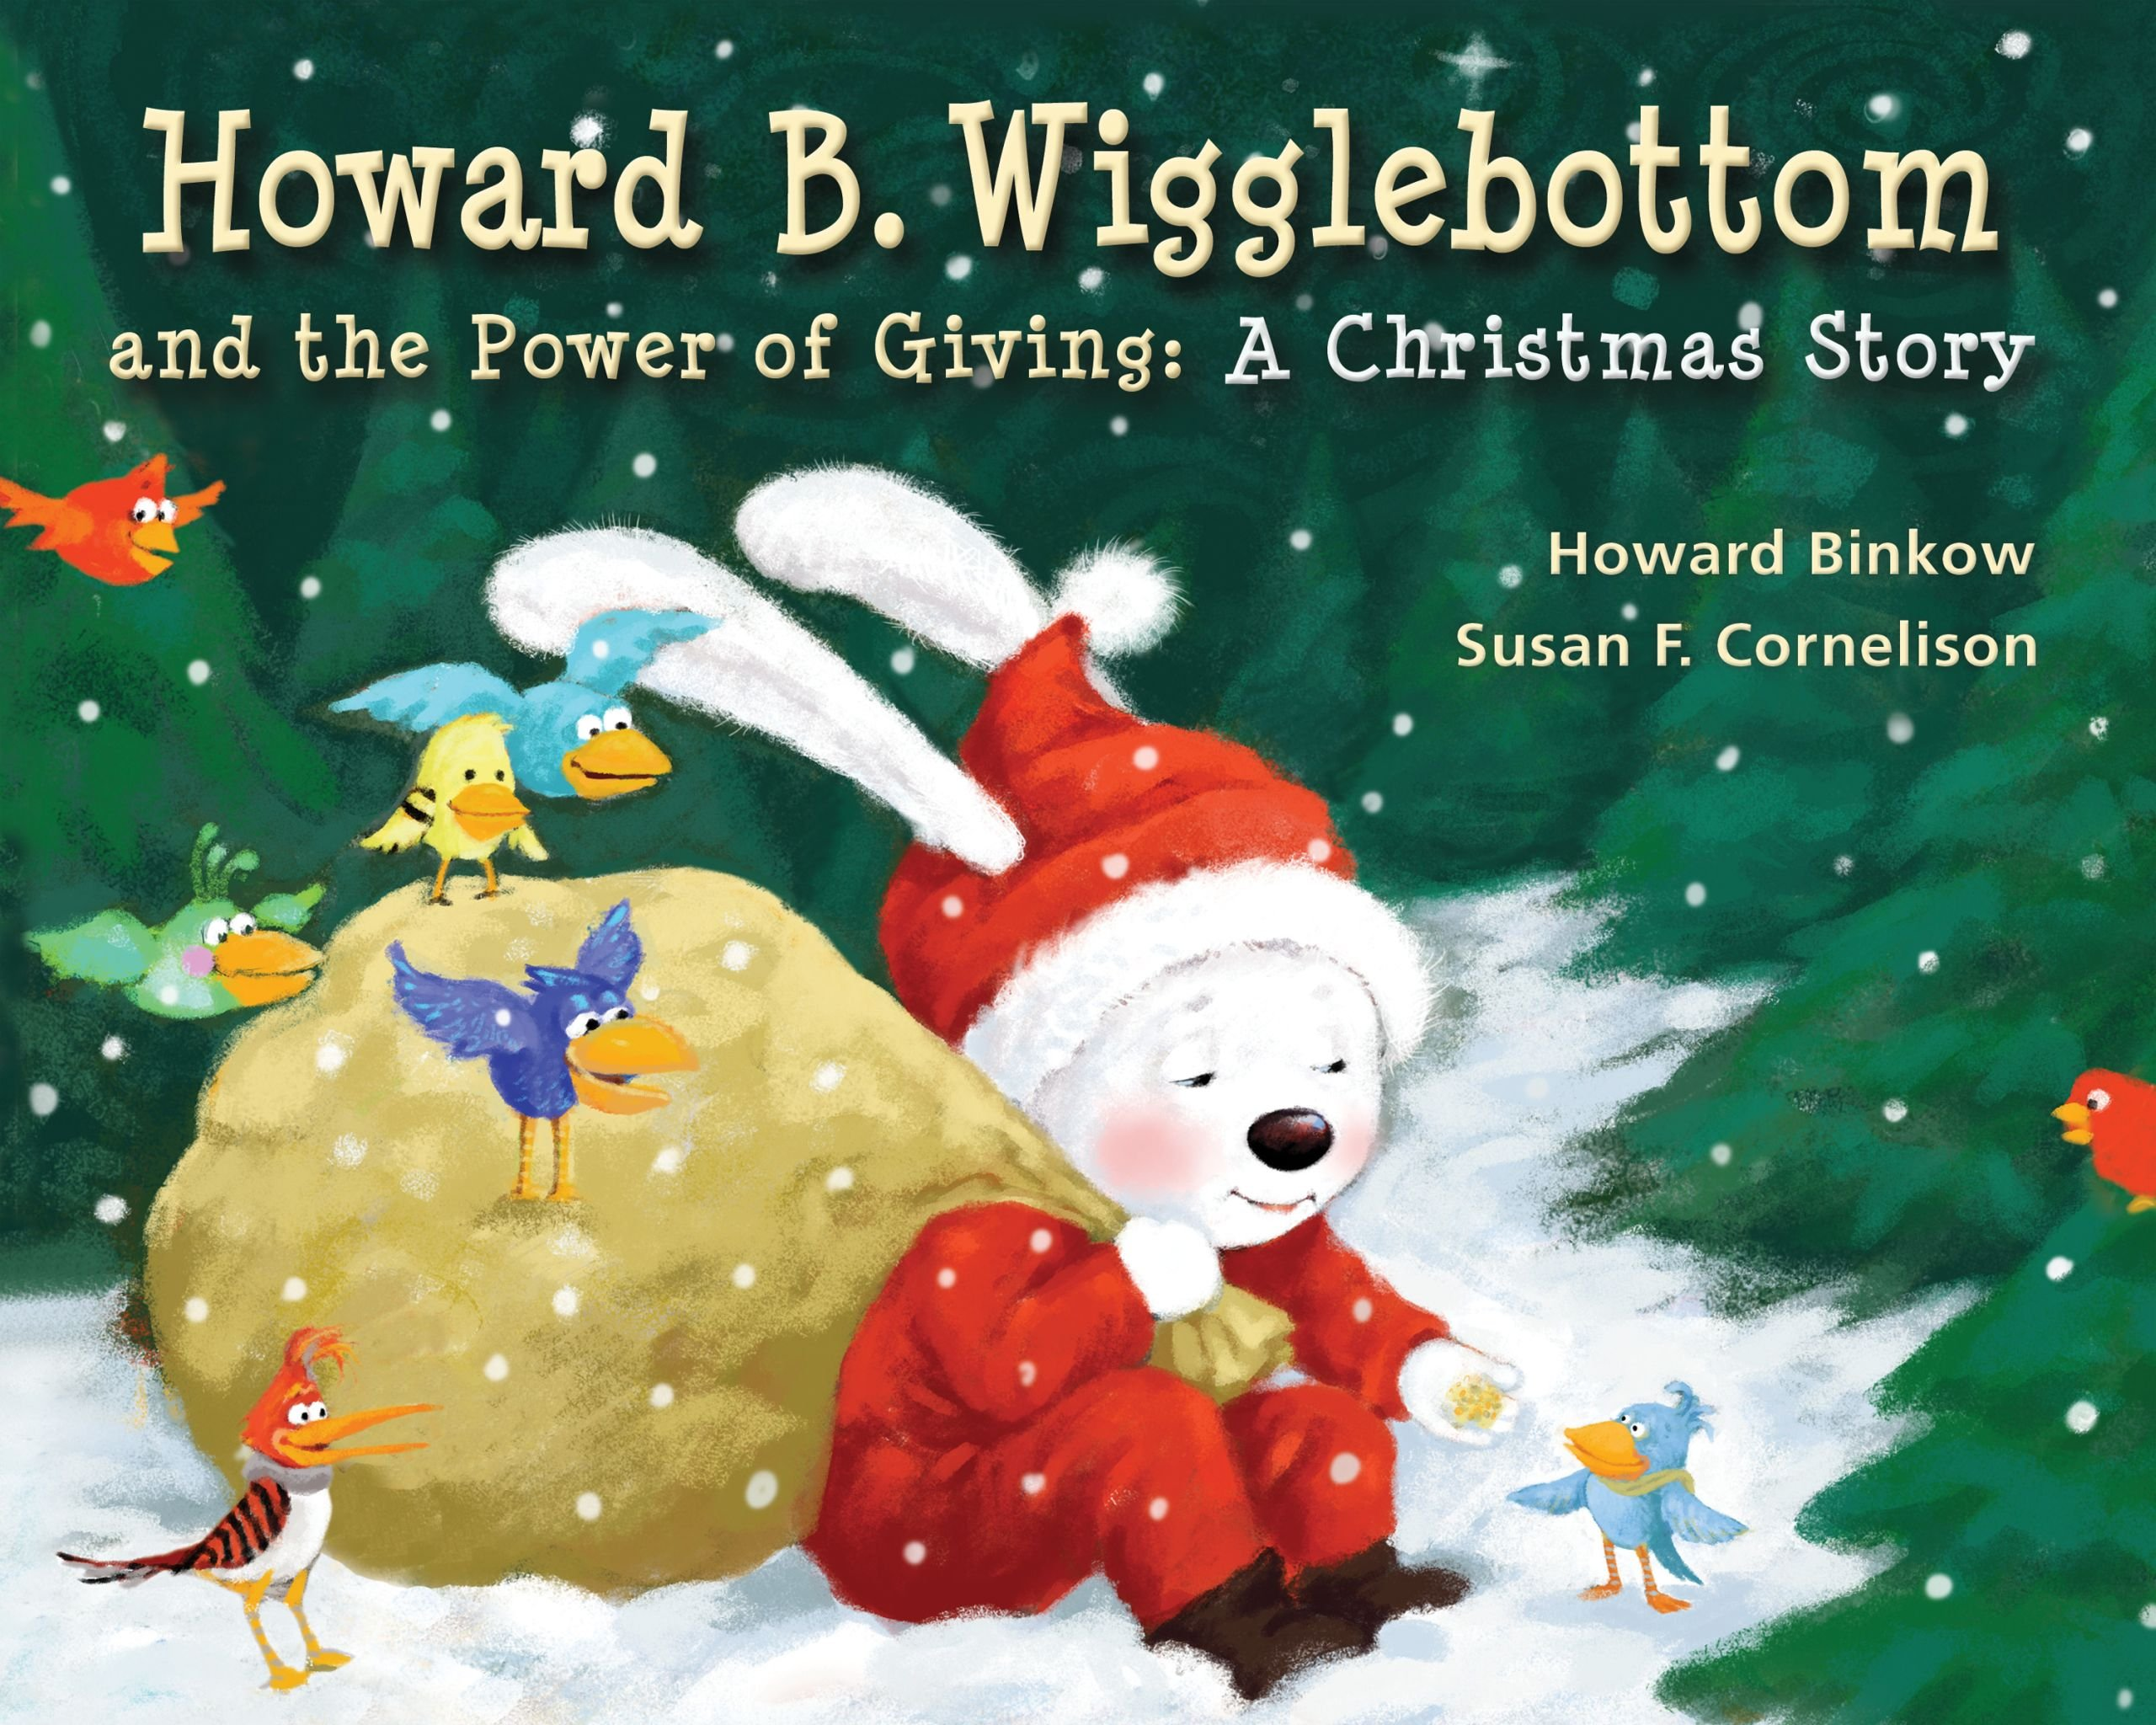 Howard B. Wigglebottom and the Power of Giving: A Christmas Story